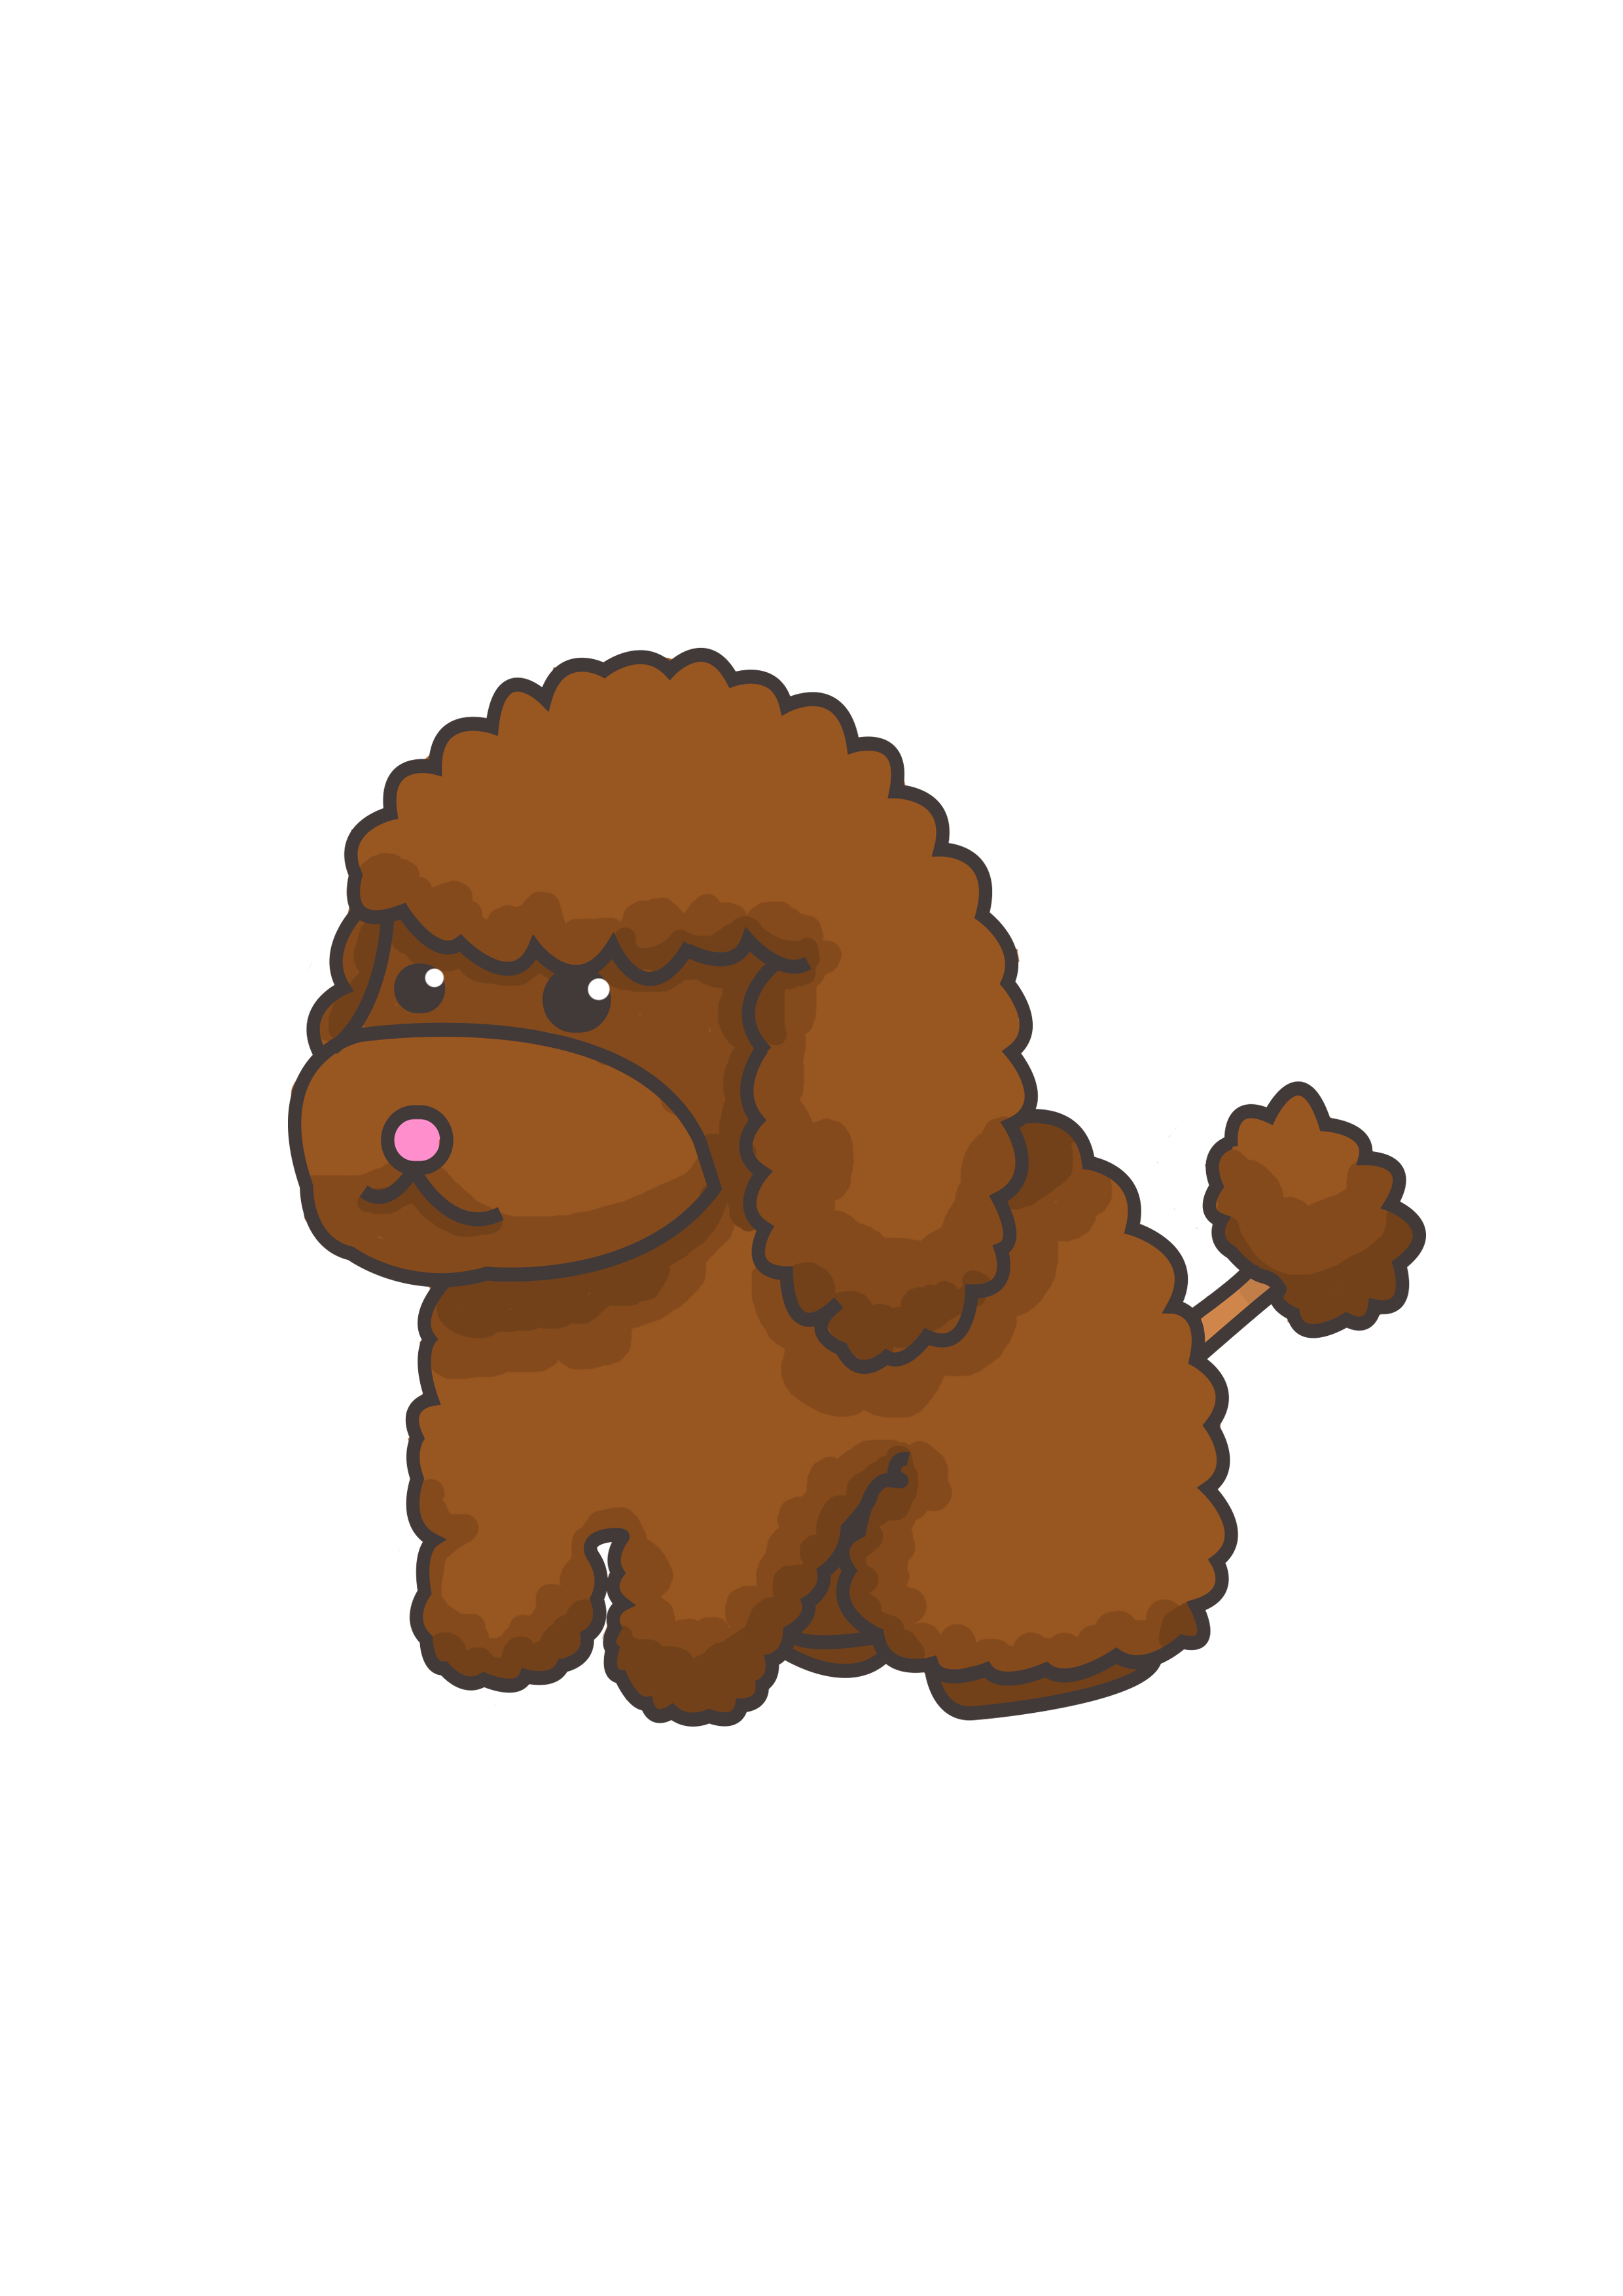 Toy Poodle Drawing Free Download Best Toy Poodle Drawing